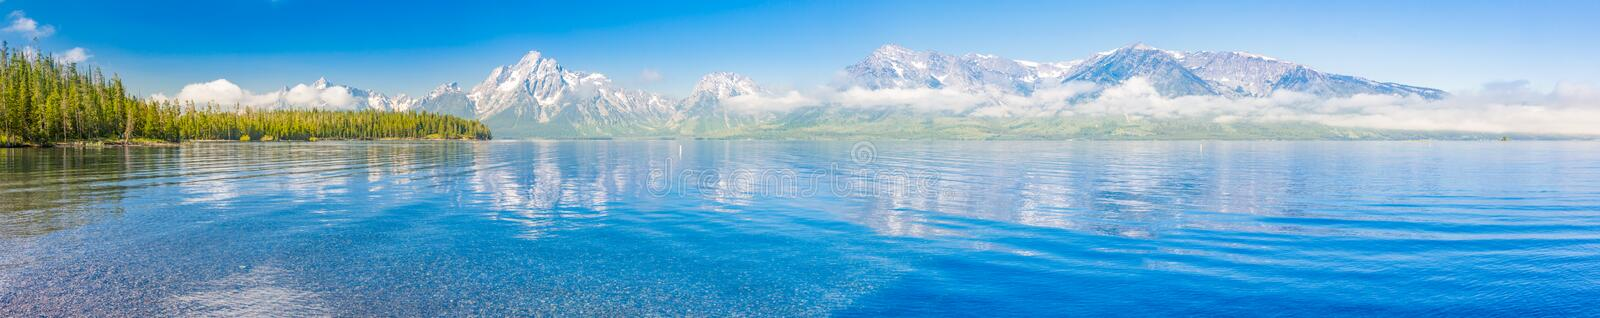 Pano of The Grand Teton National Park Mountain Range in Wyoming, USA. stock images